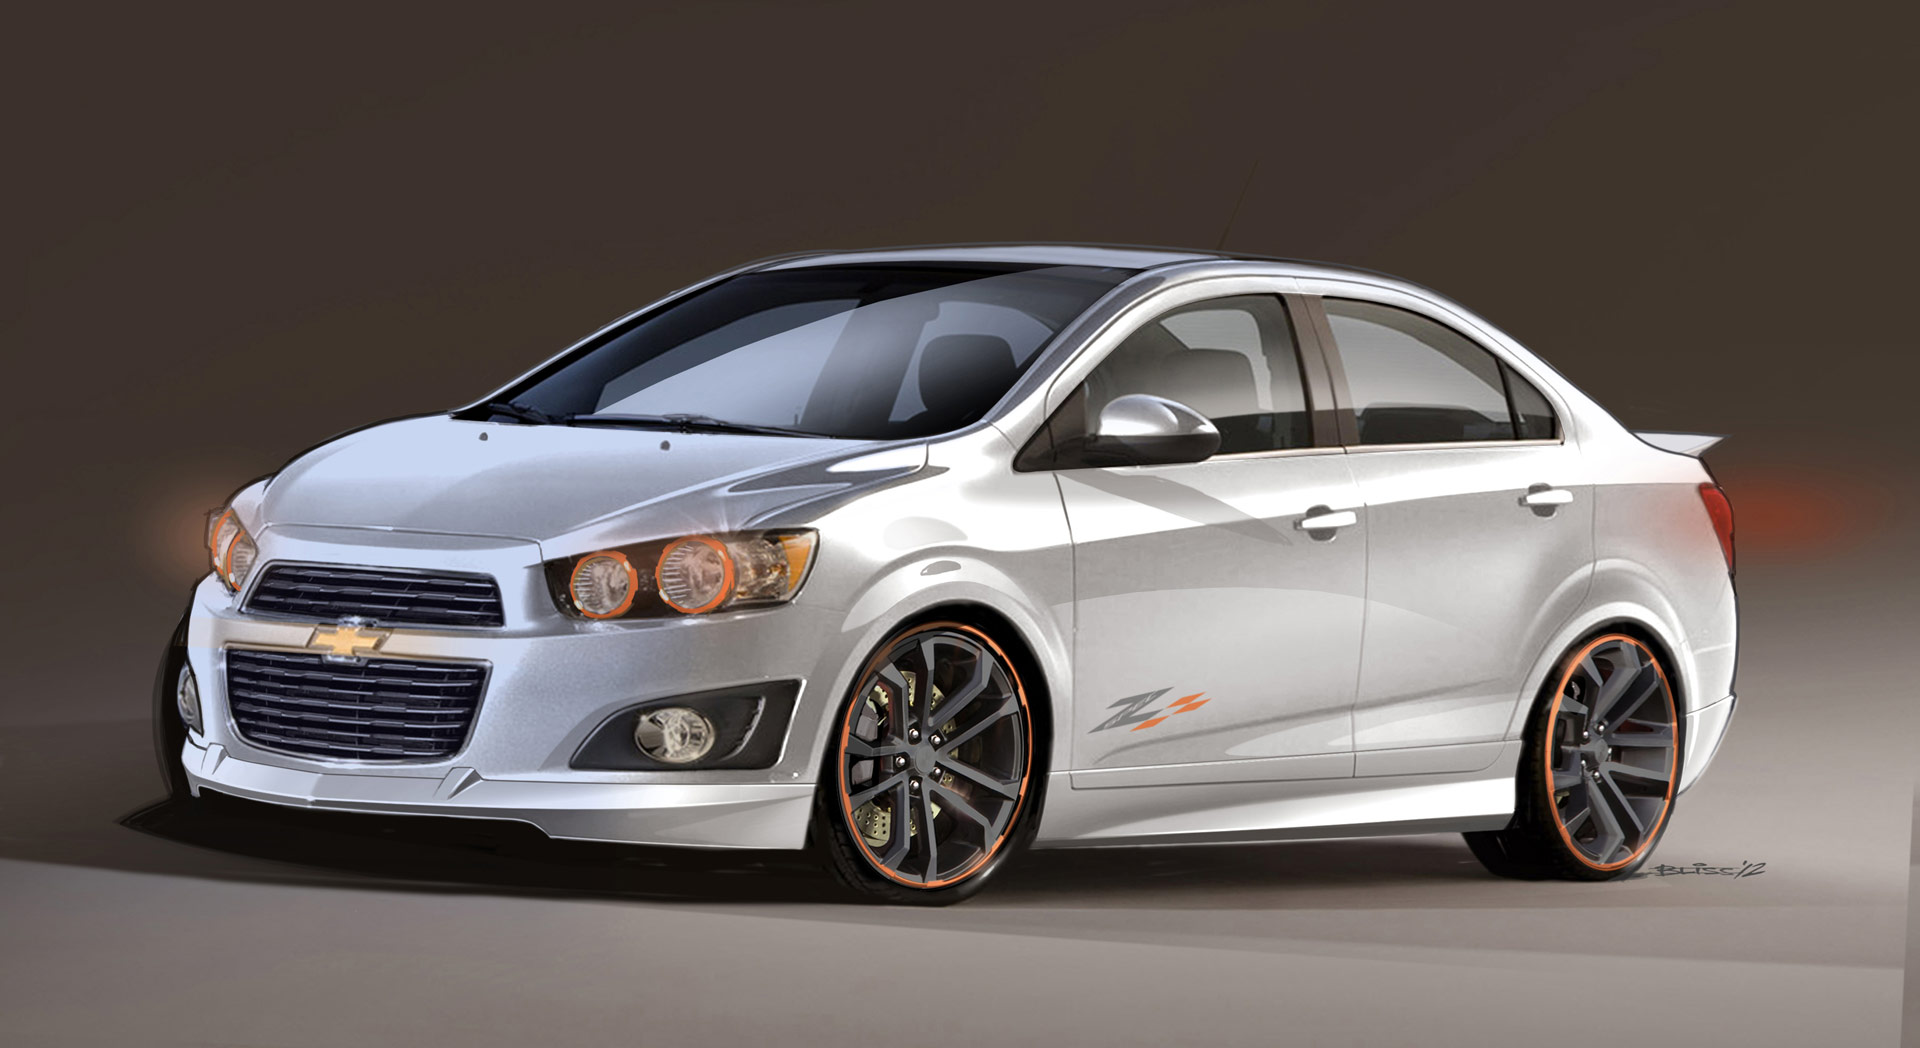 2013 Chevrolet Sonic Z-Spec 2.5 Concept News and Information